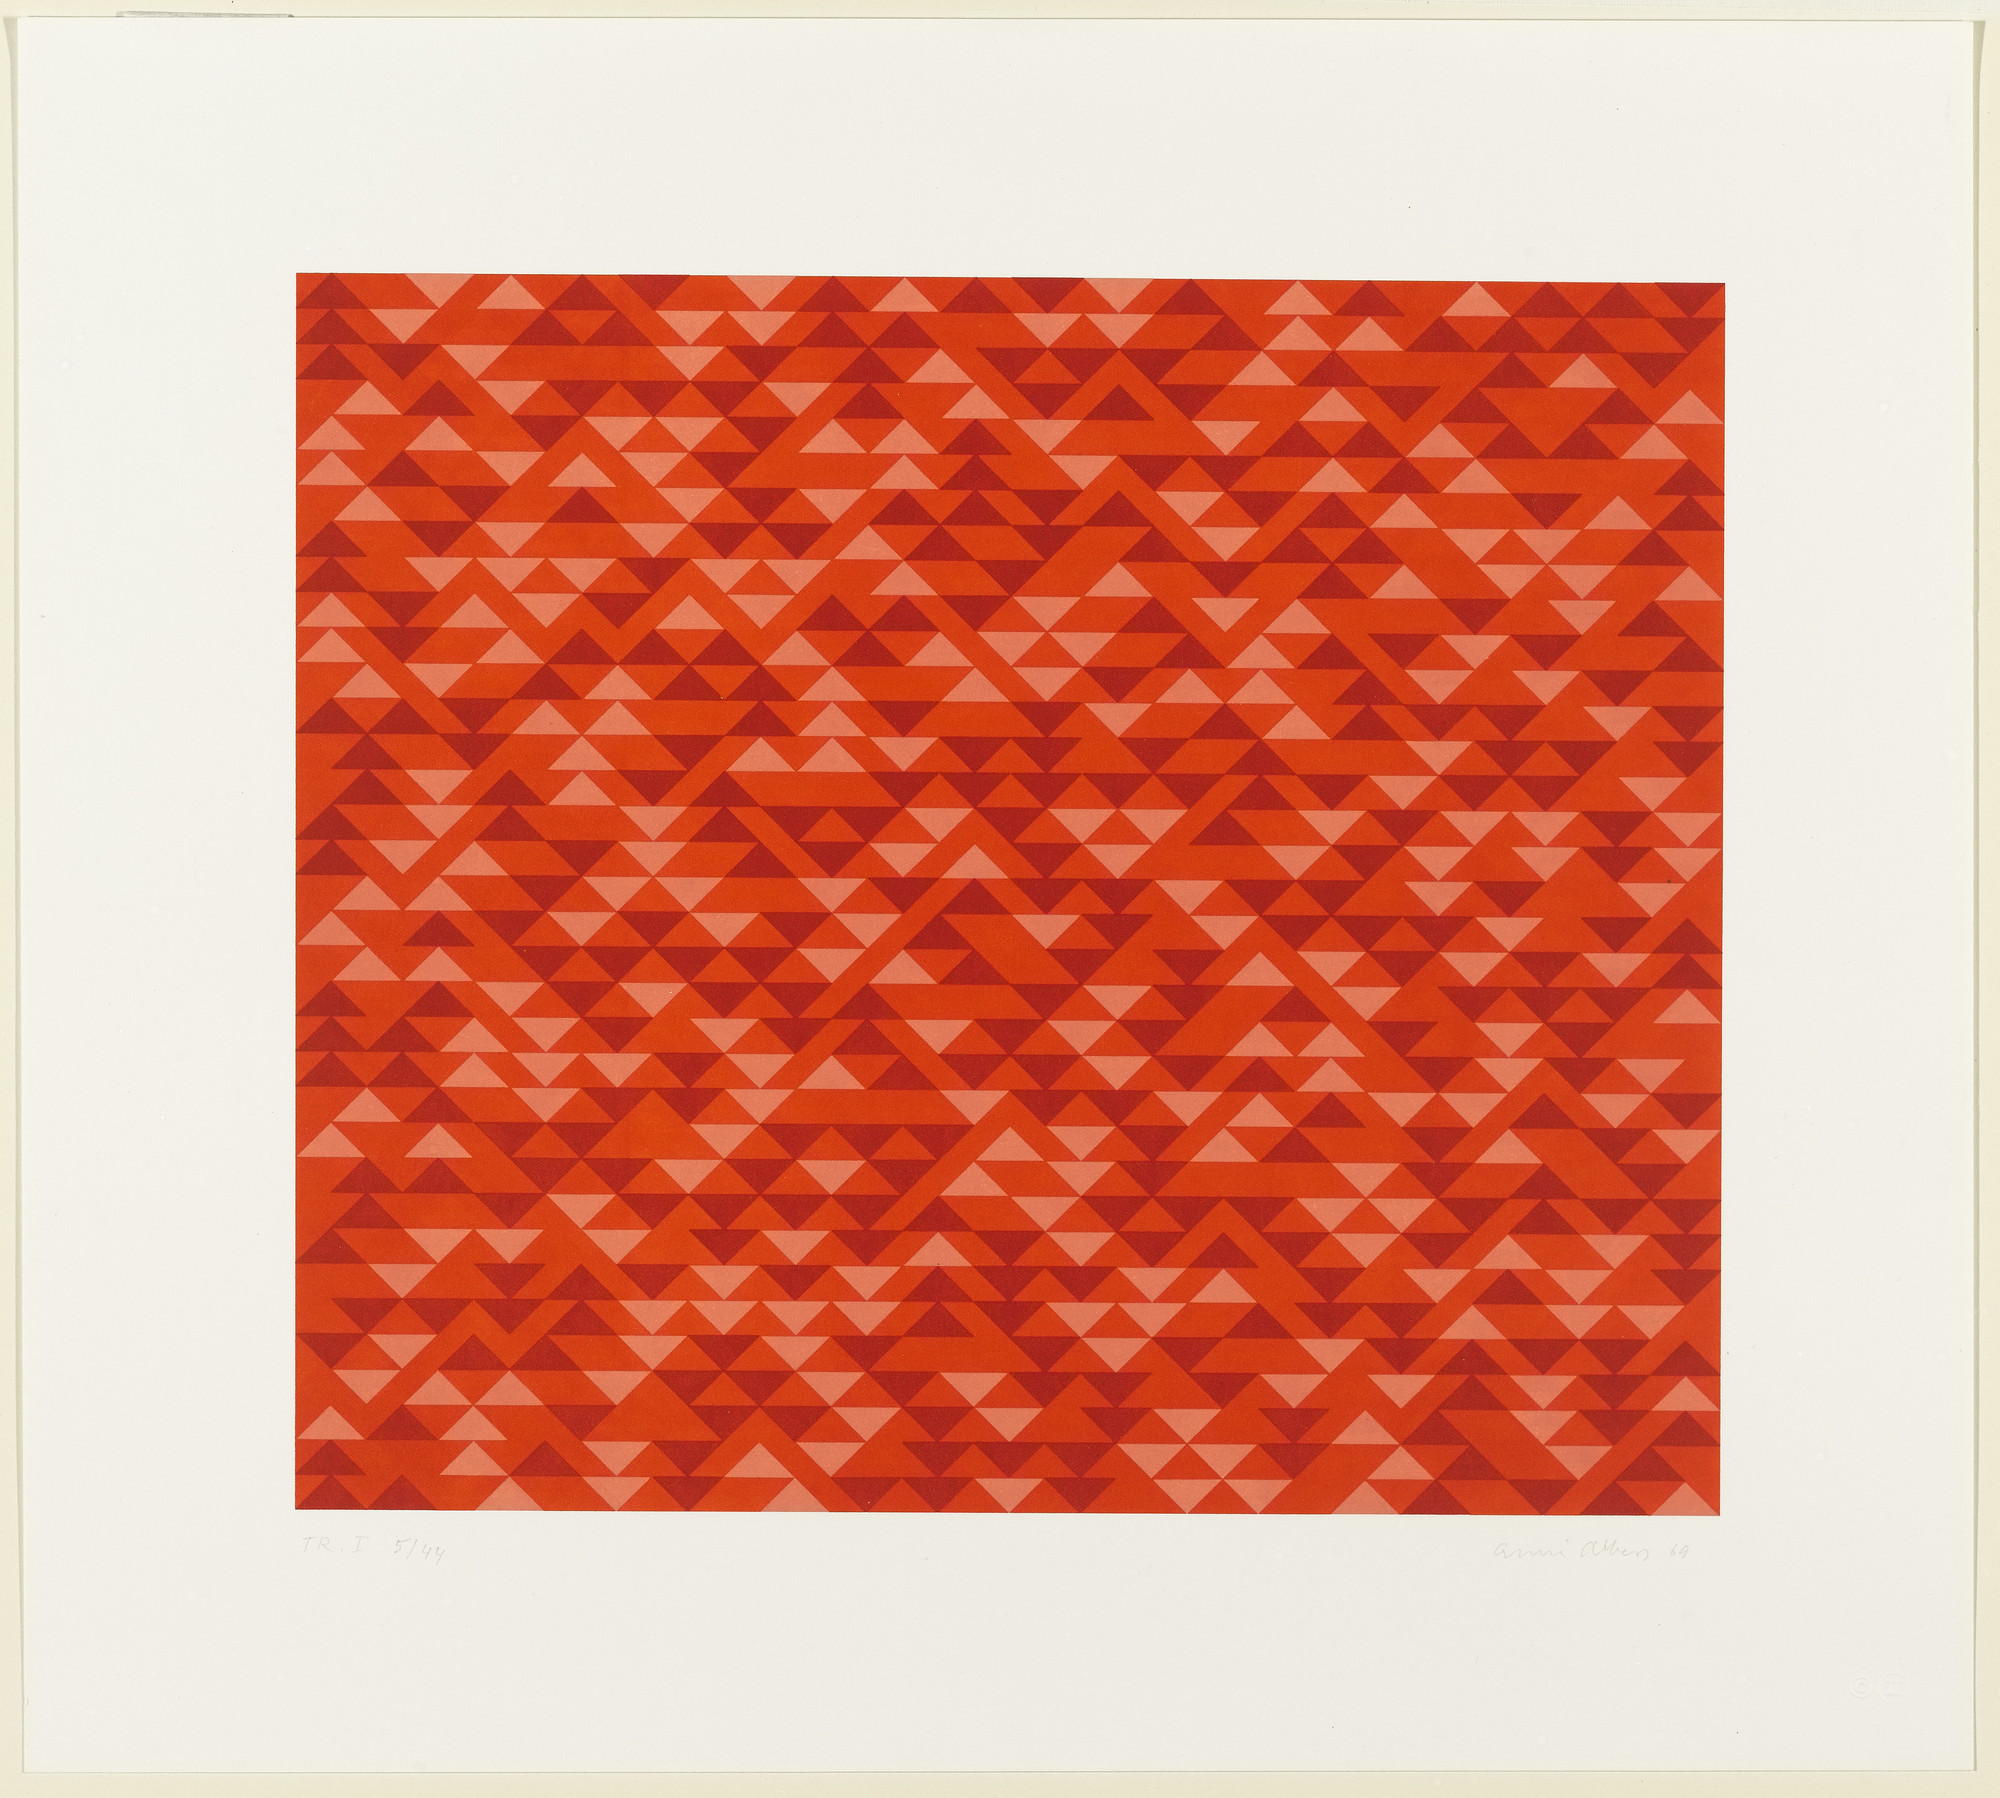 Anni Albers. TR I. 1969, published 1970